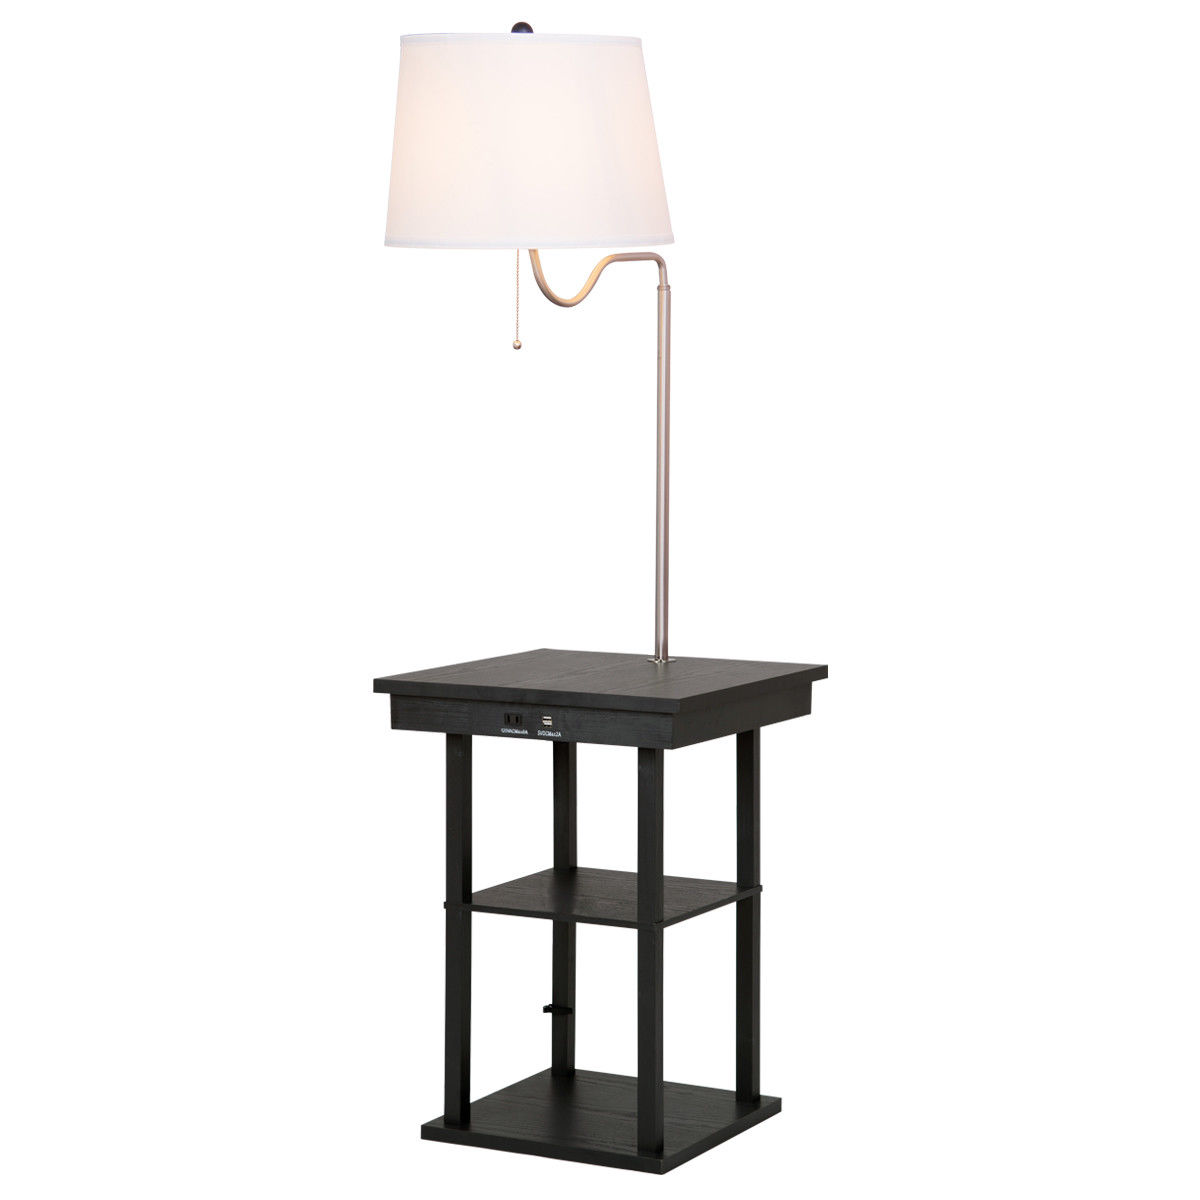 Gymax Floor Lamp Swing Arm Lamp Built In End Table W/ Shade 2 USB Ports